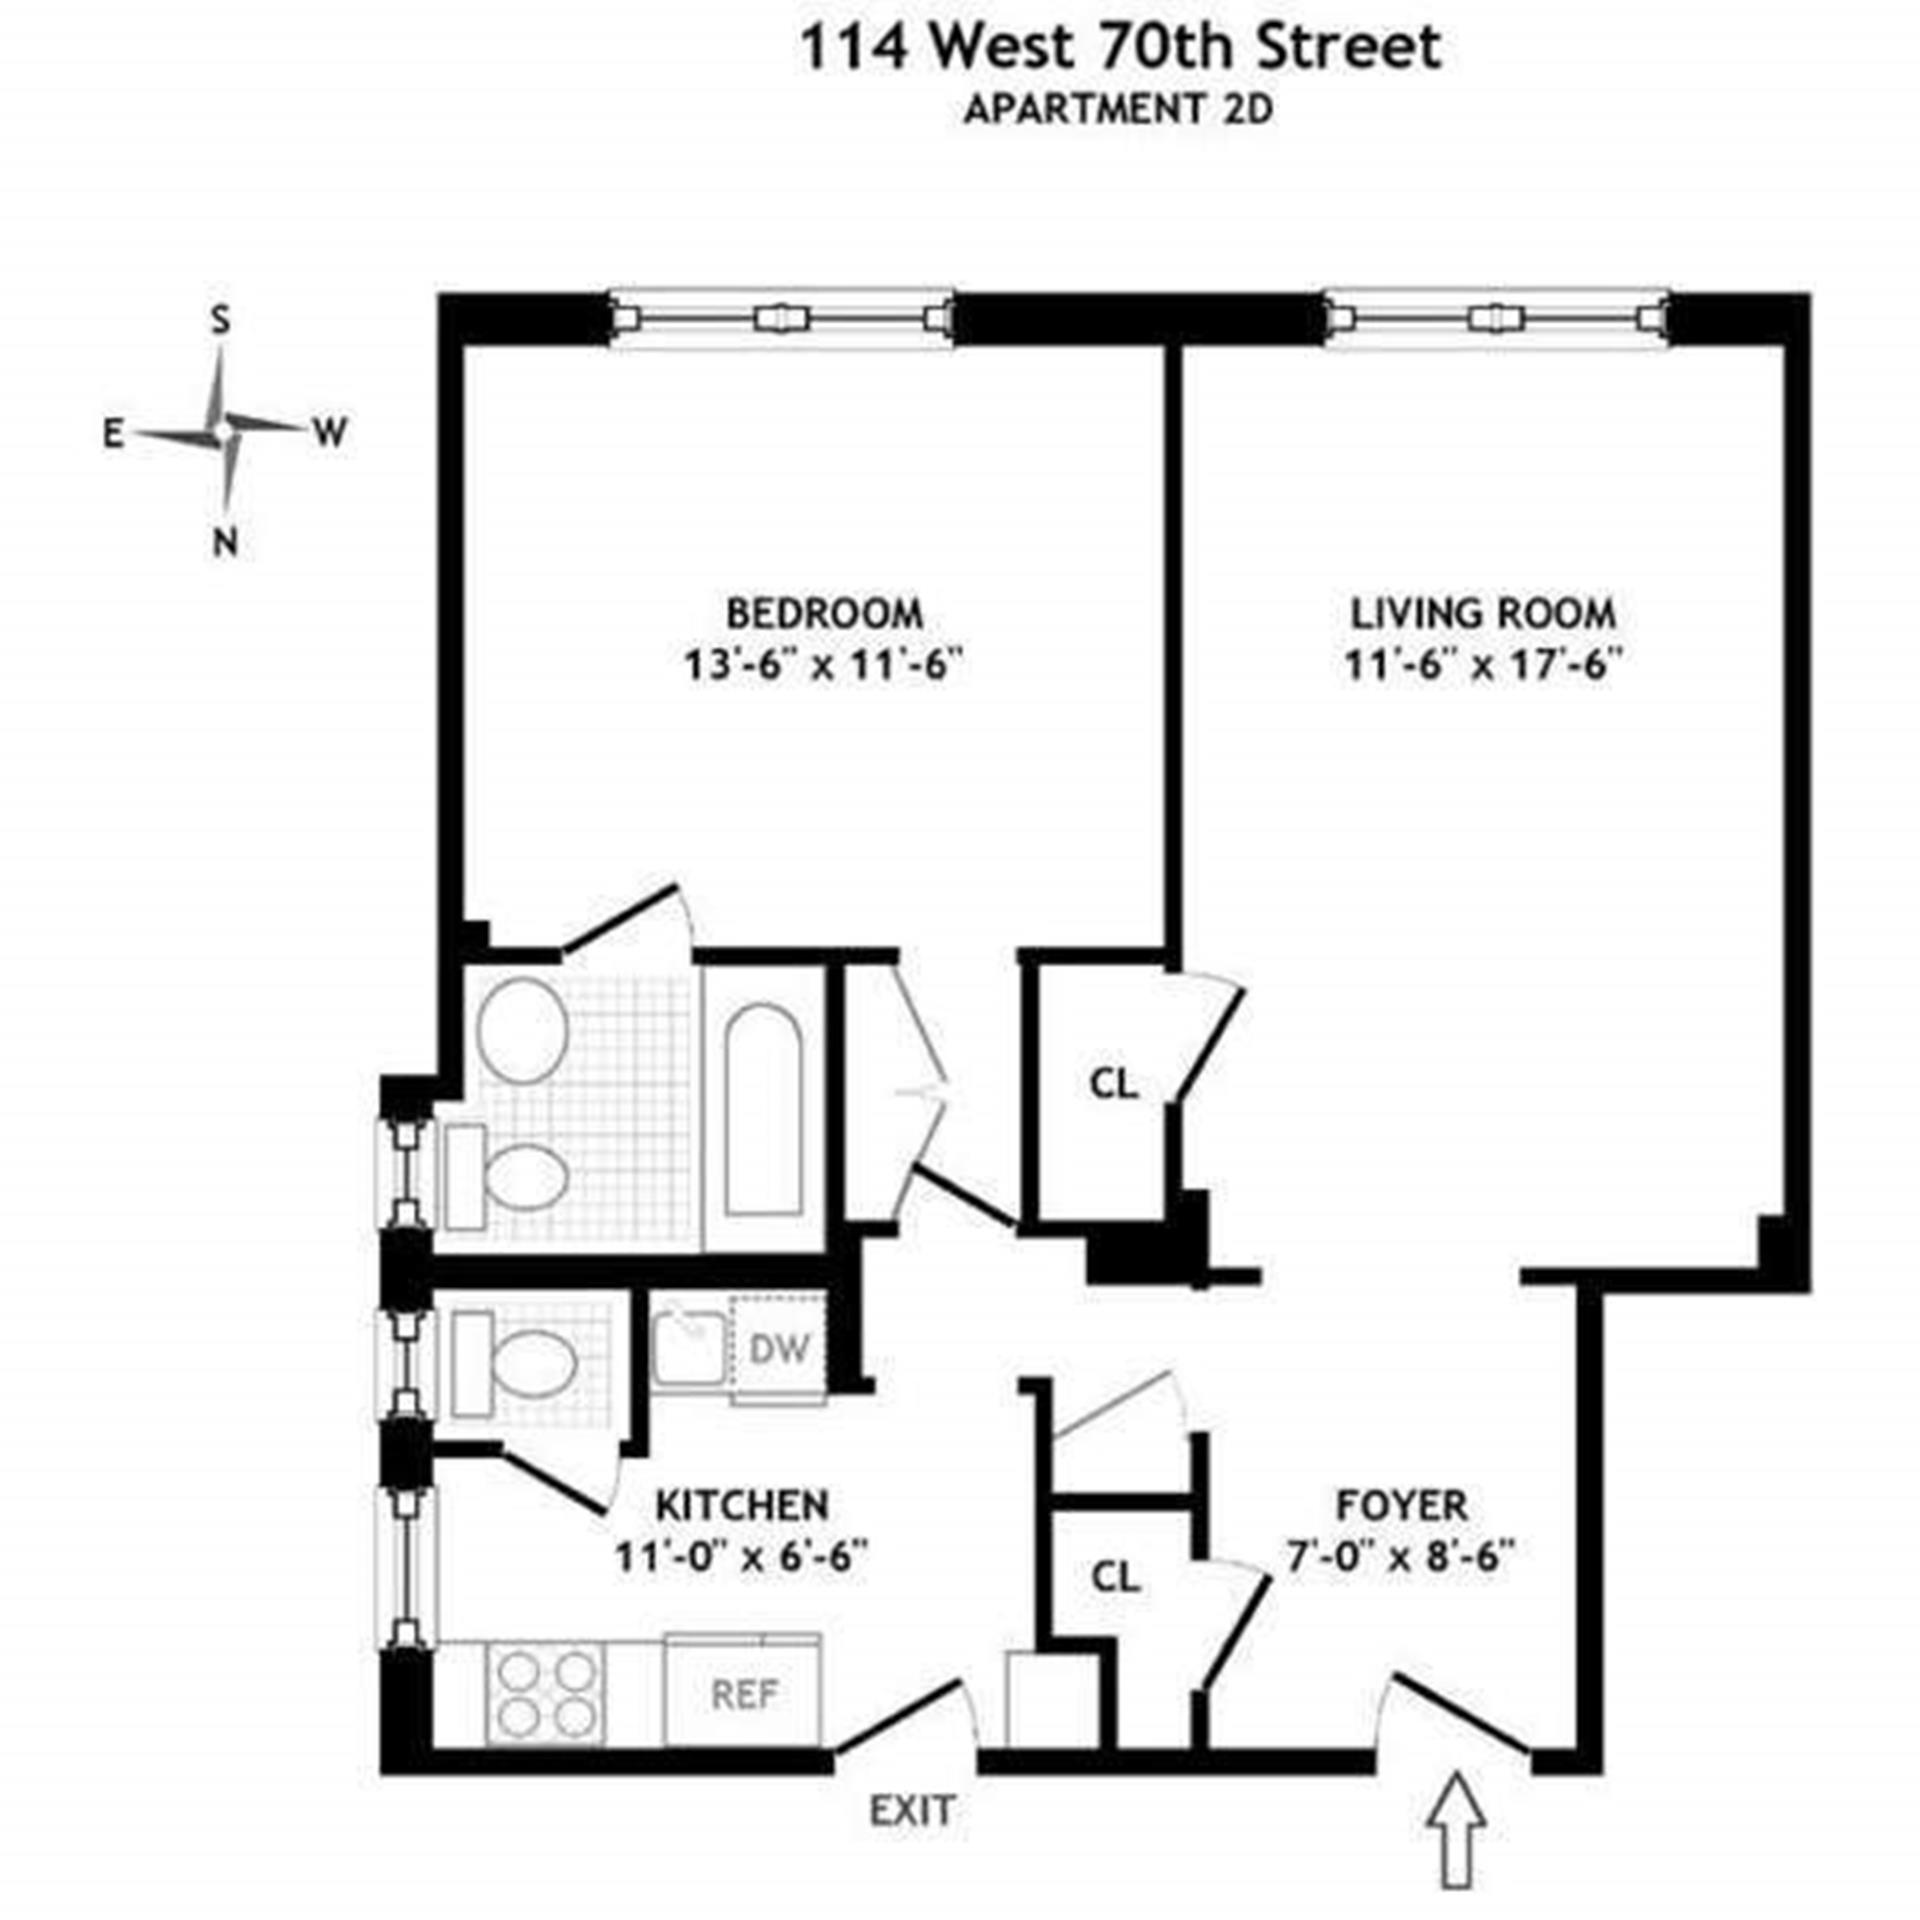 Floor plan of 114 West 70th St, 2D - Upper West Side, New York